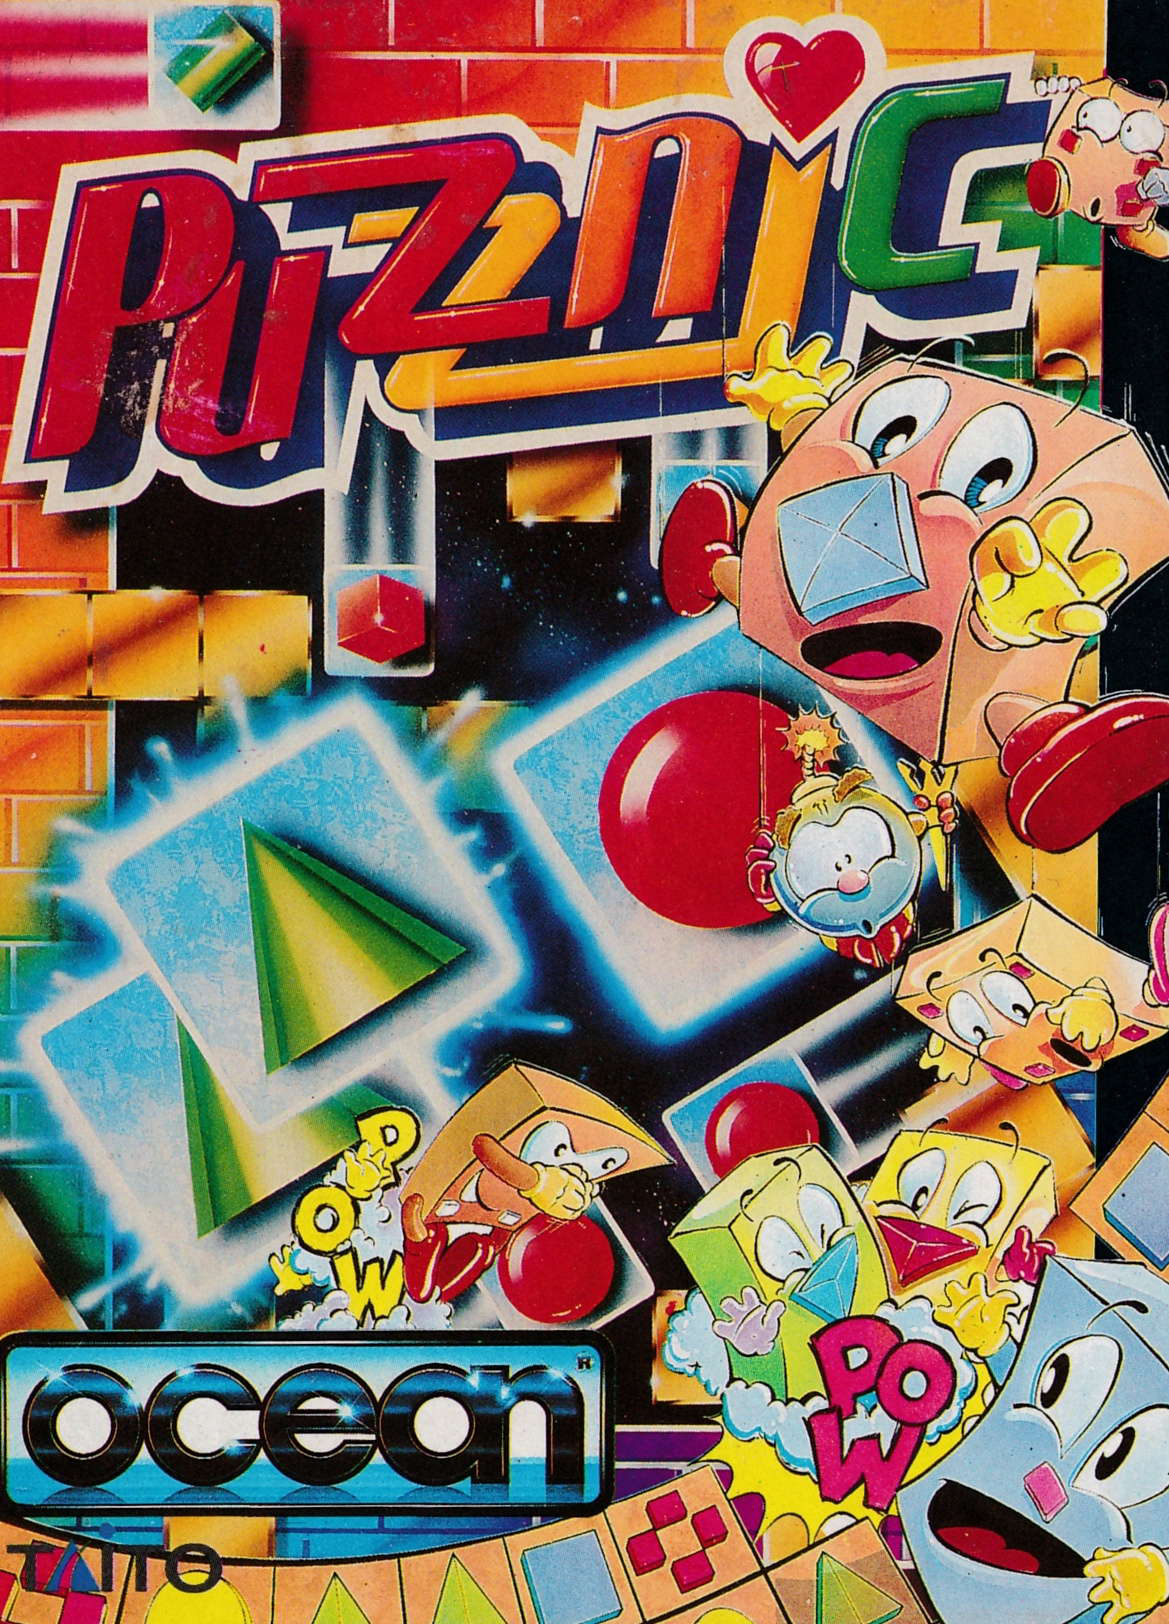 cover of the Amstrad CPC game Puzznic  by GameBase CPC